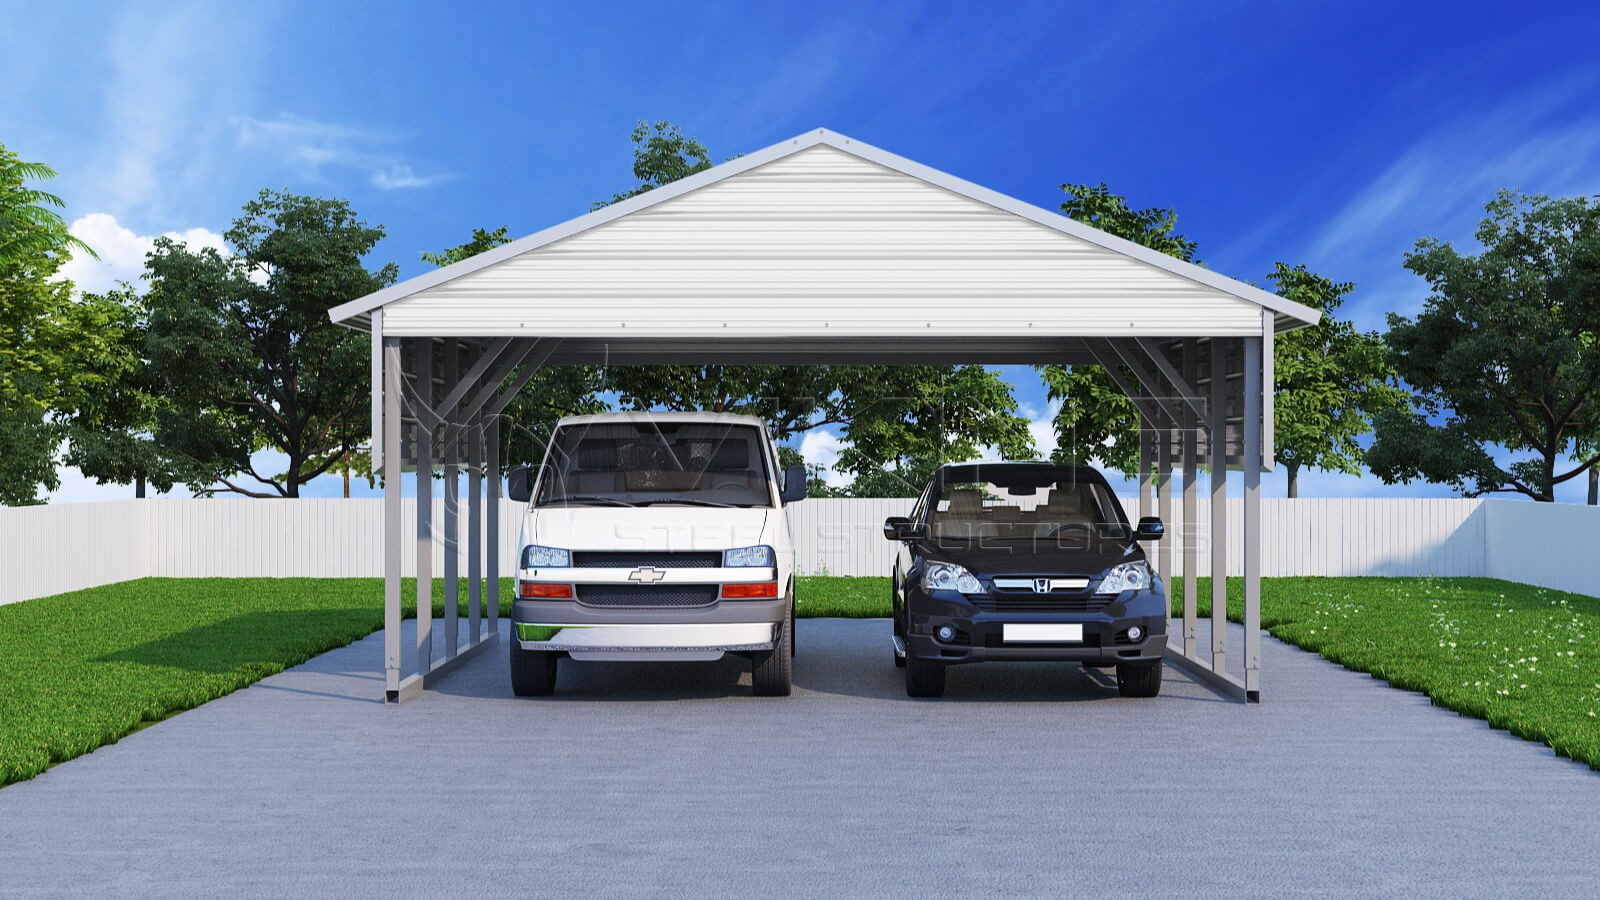 two car canopy two car canopy two car canopy suppliers and manufacturers at. Black Bedroom Furniture Sets. Home Design Ideas